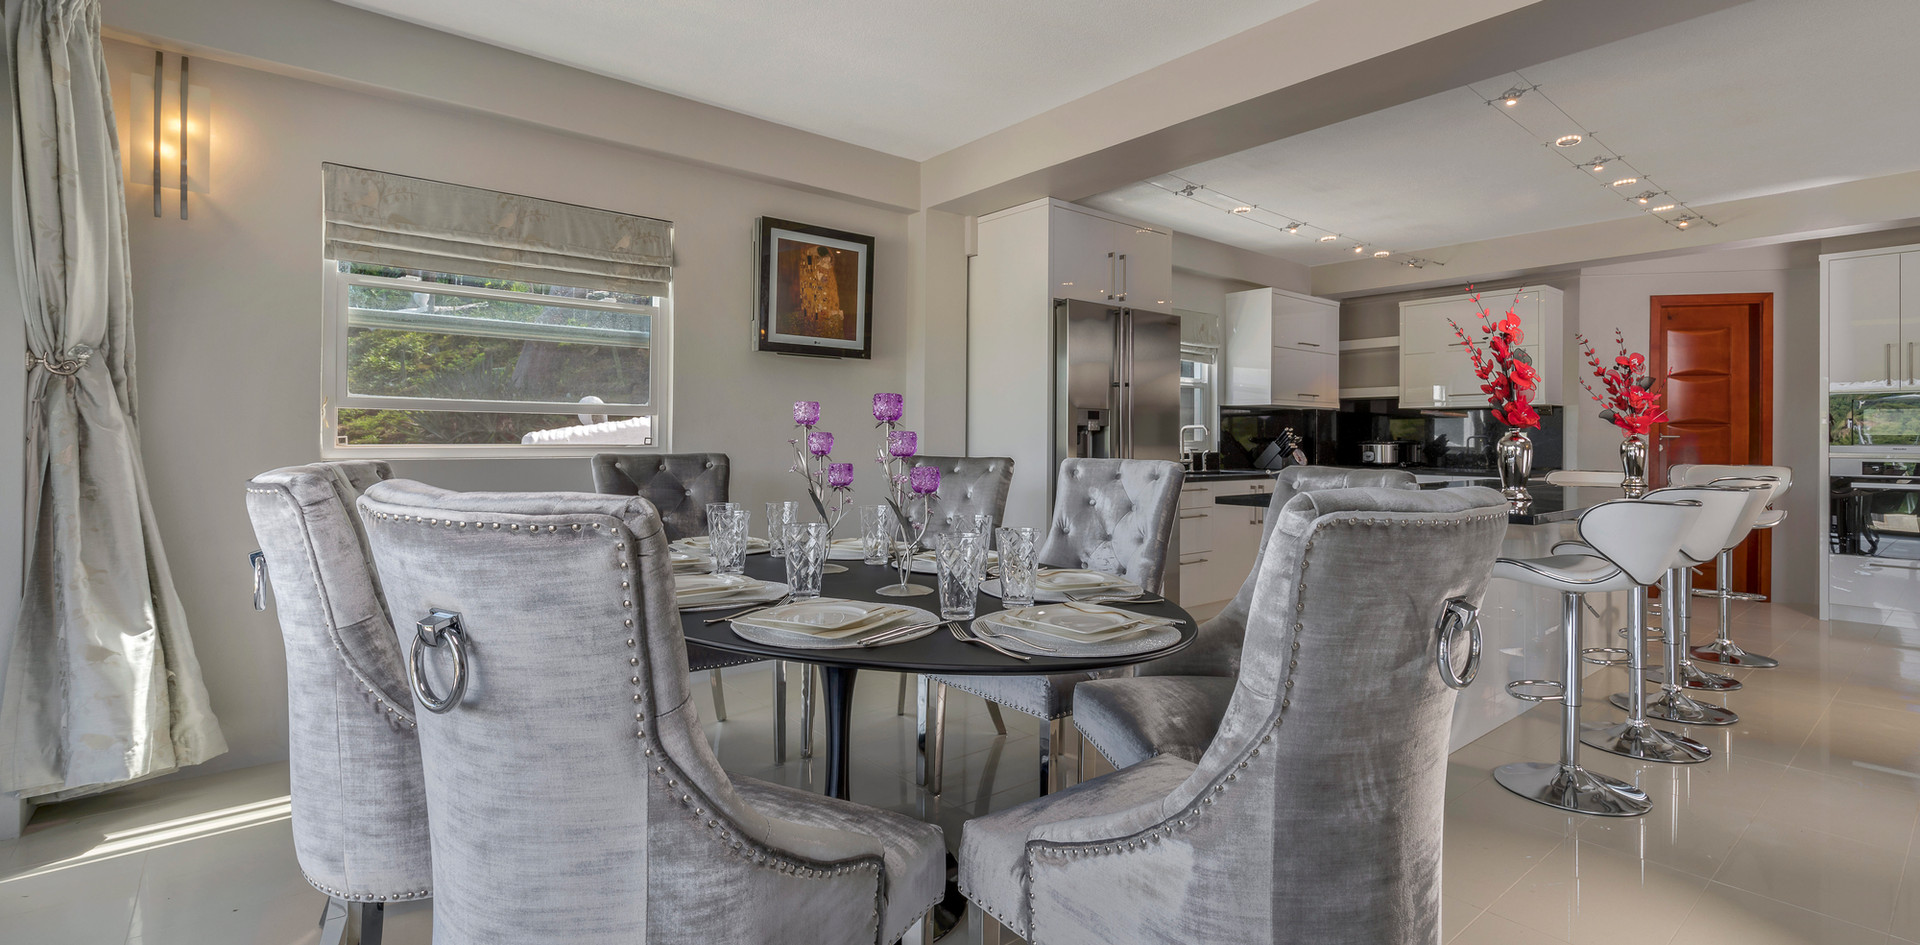 Dining area of sitting room